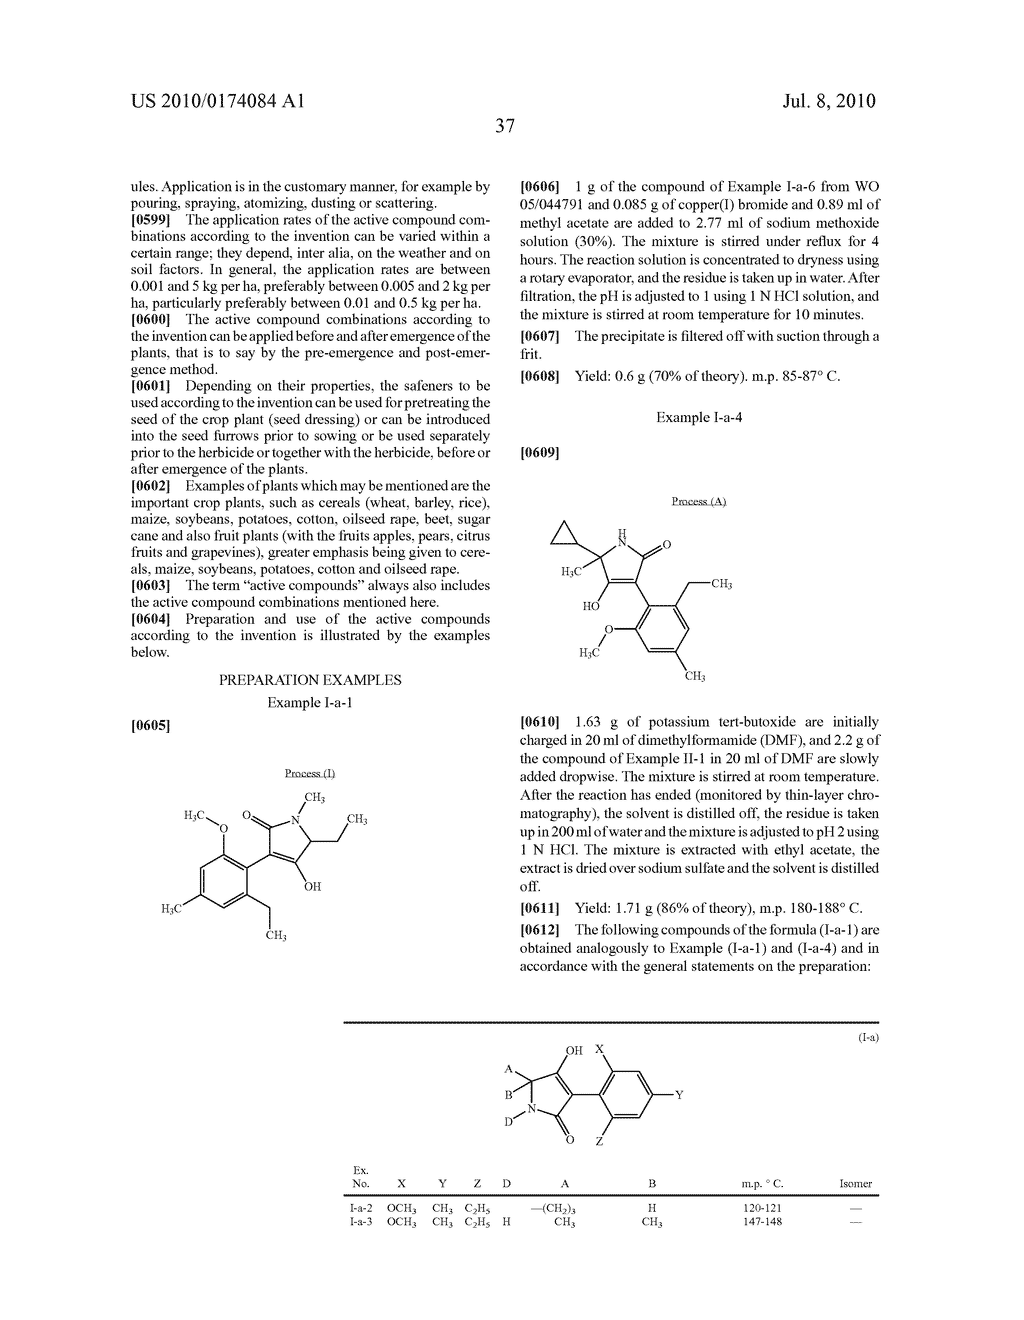 2-Alkoxy-6-alkyl-phenyl-substituted Spirocyclic Tetramic Acid Derivatives - diagram, schematic, and image 38